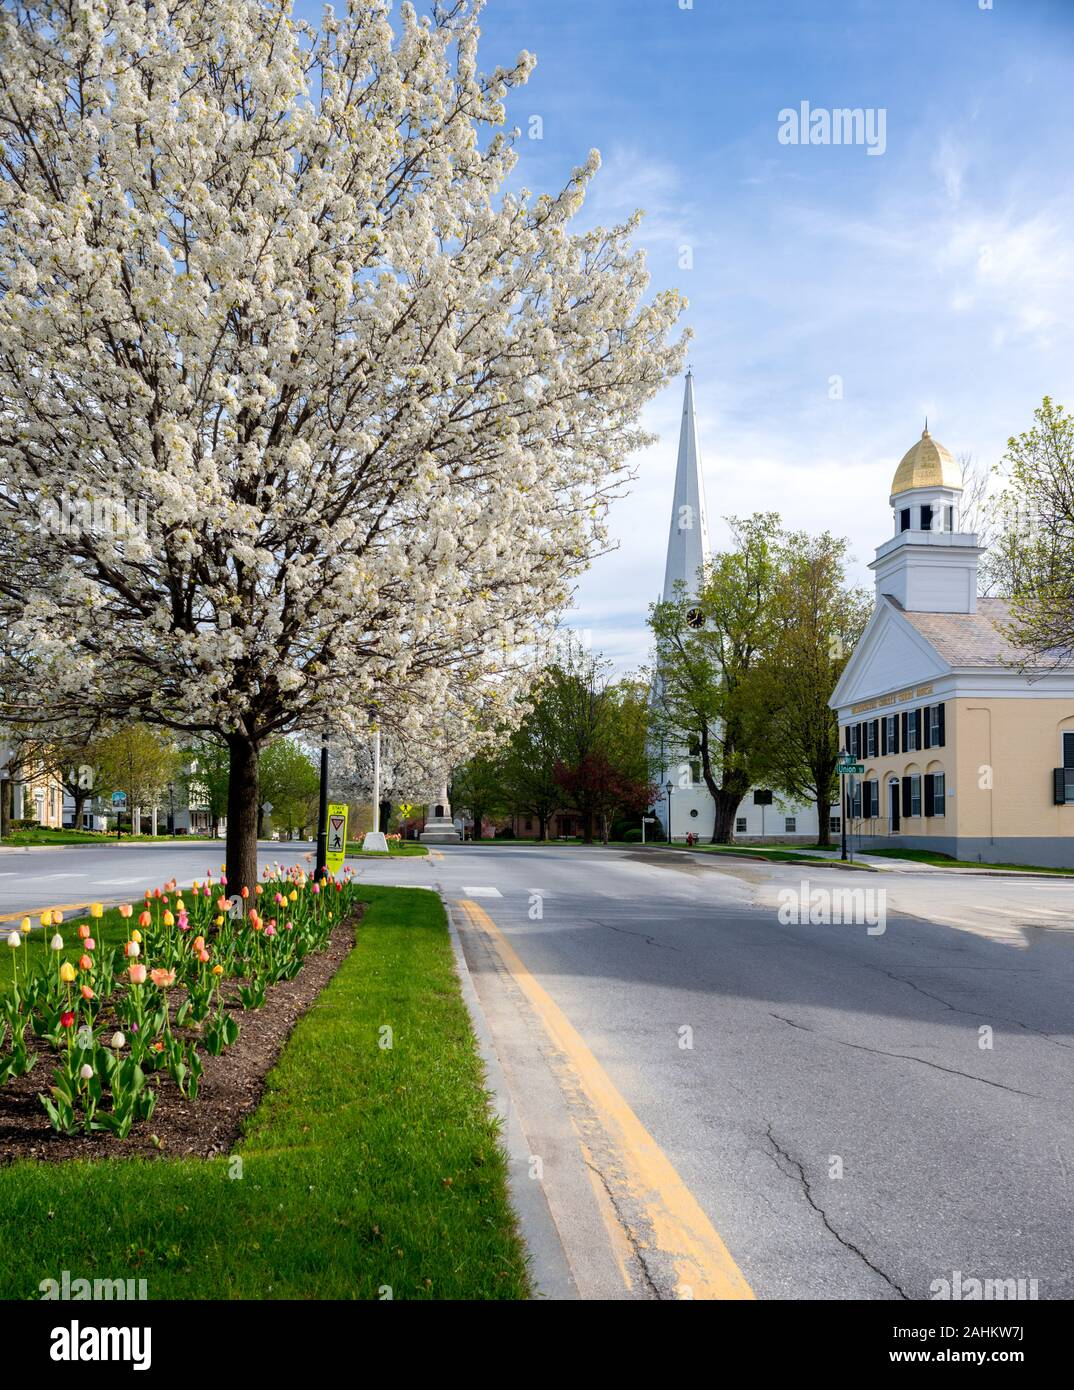 View of the Manchester Village Historic District center in Vermont during the spring with tulips and blossoming trees. Stock Photo